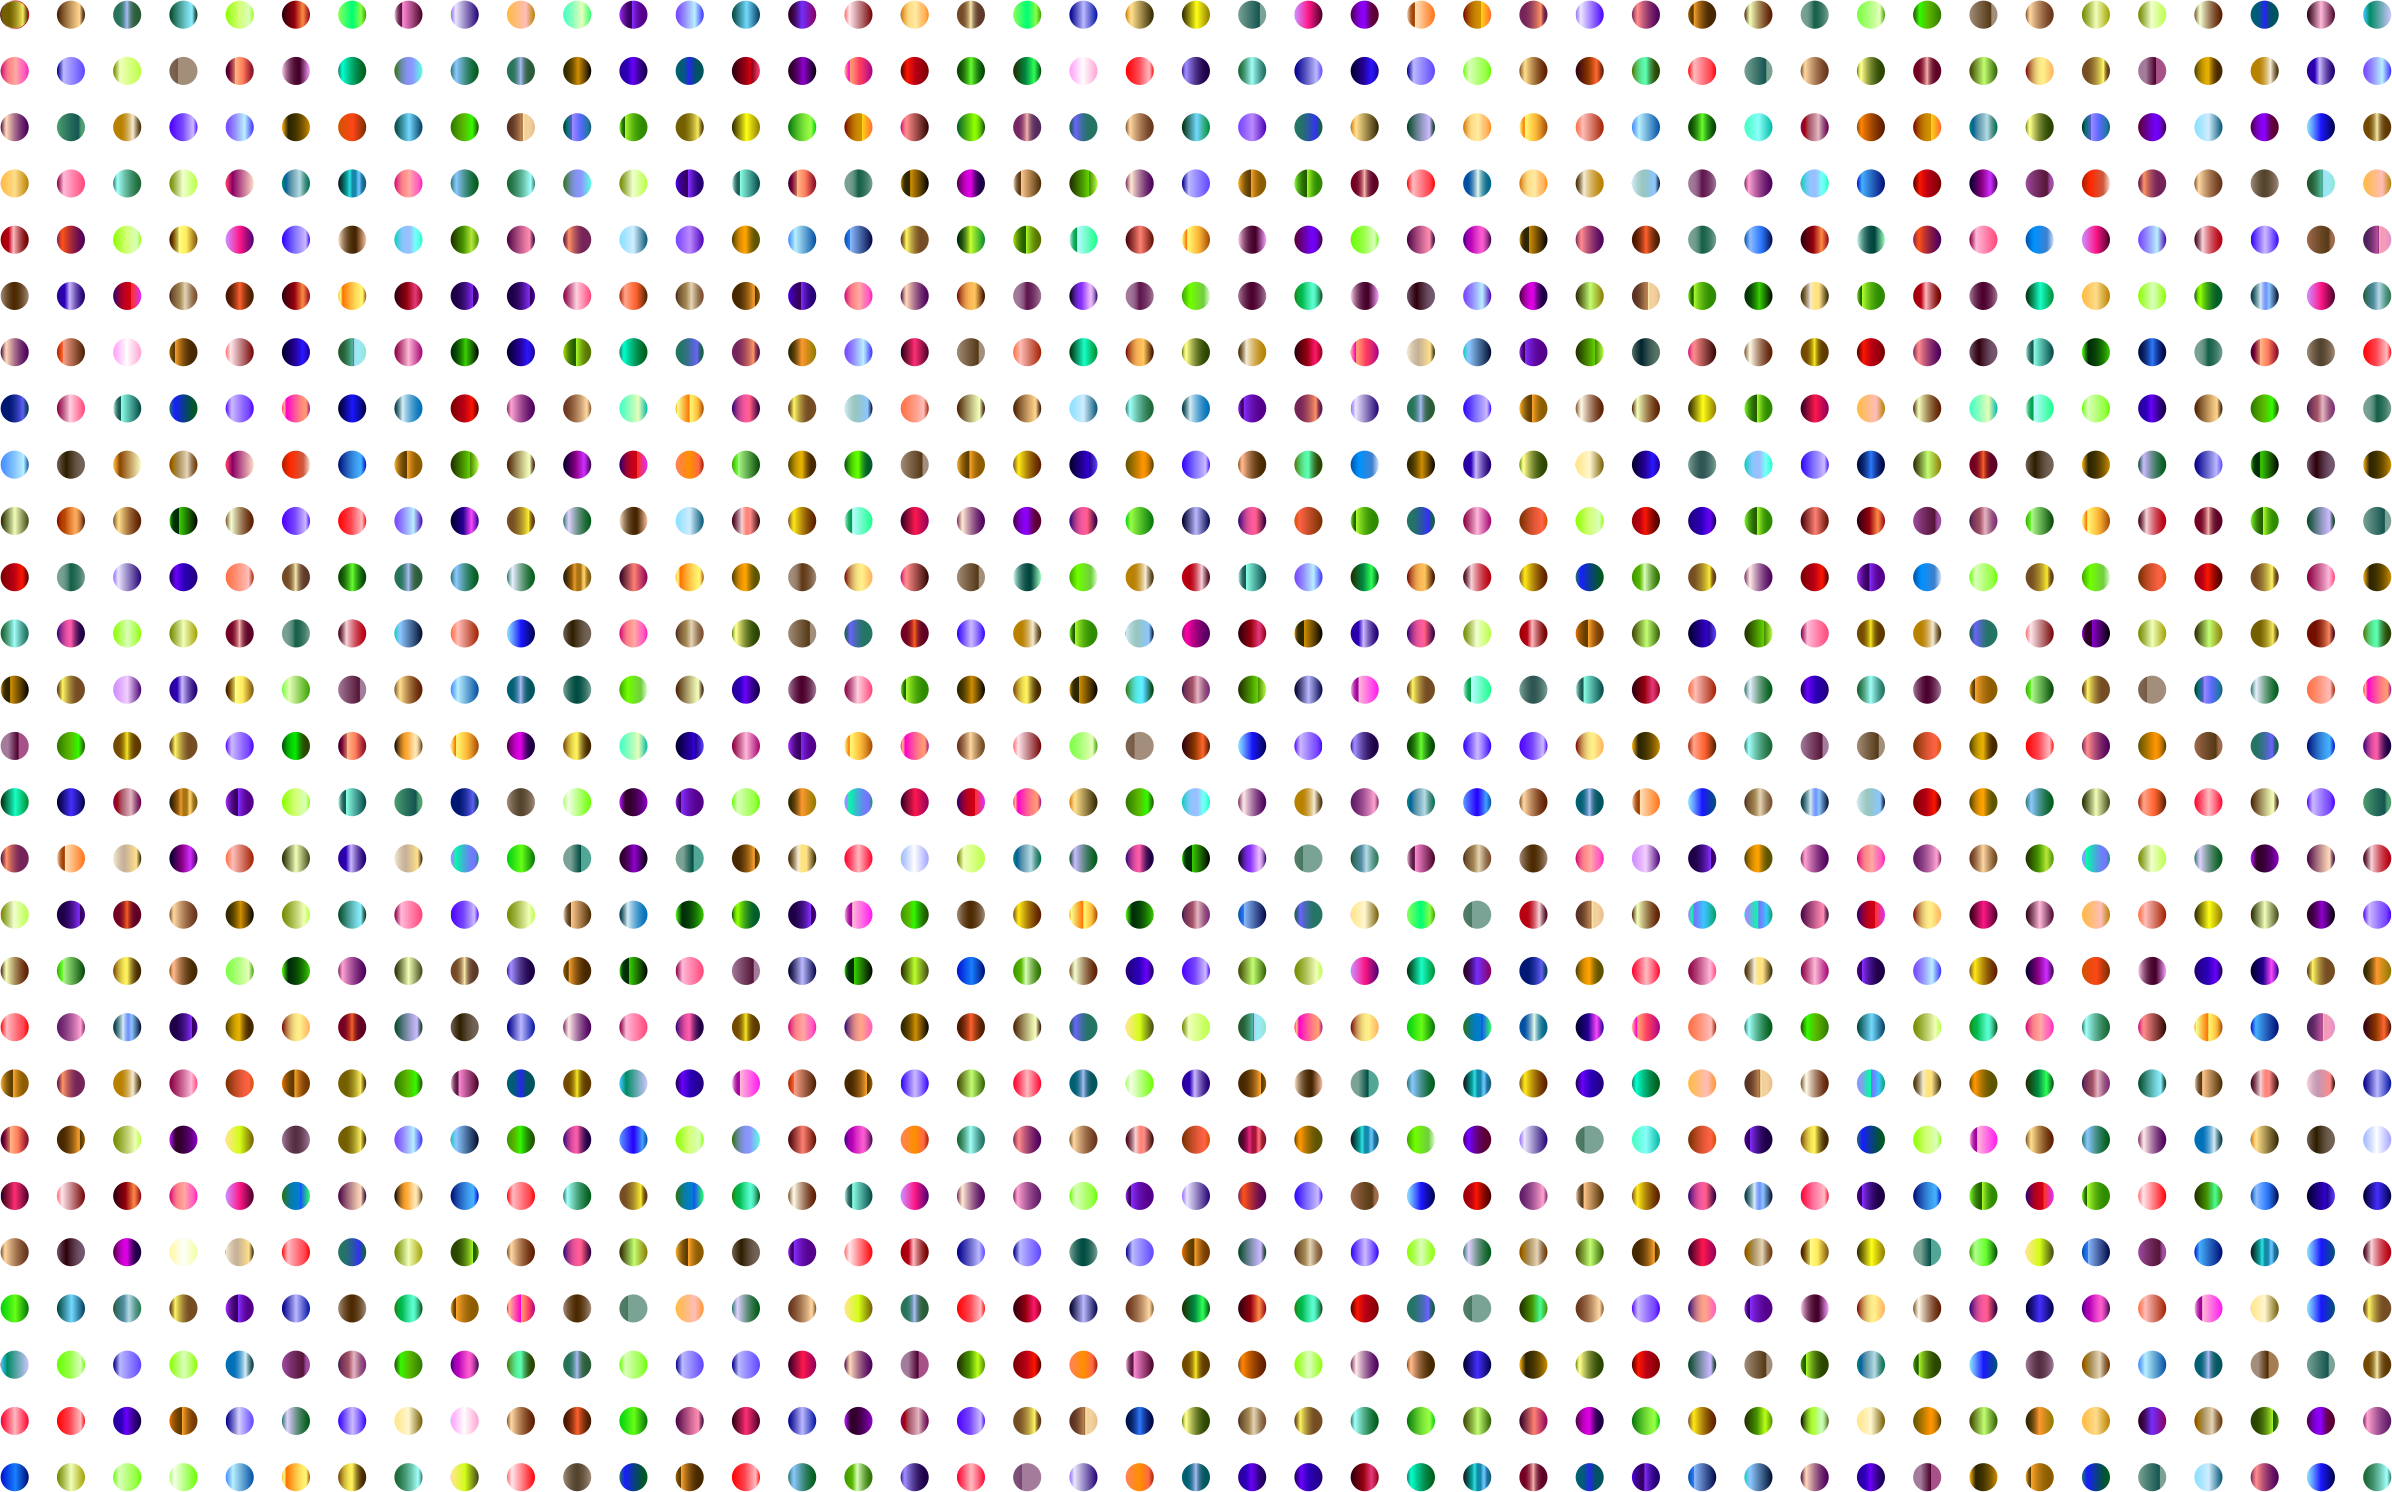 Prismatic Polka Dots 3 No Background by GDJ